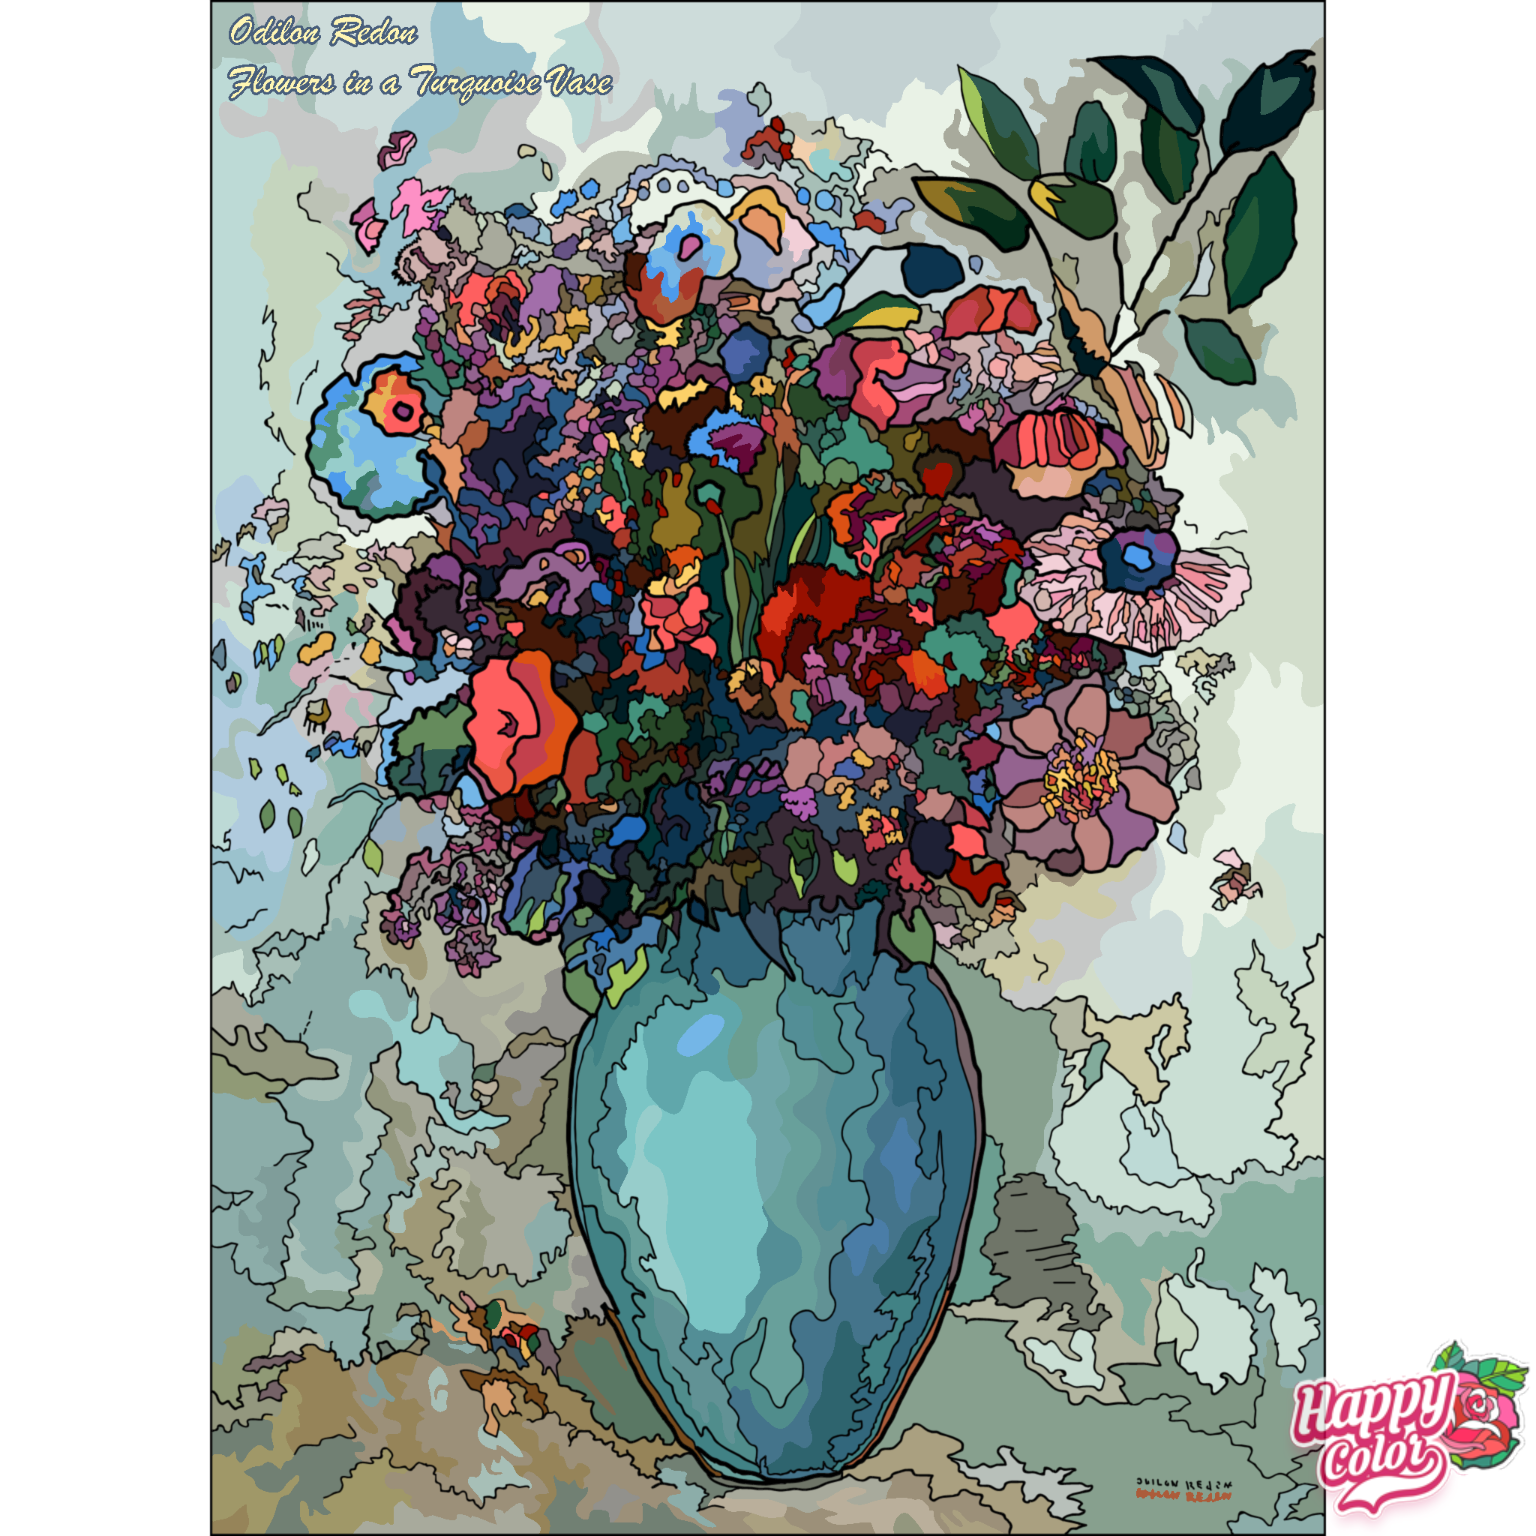 coloring book app image of flowers in a vase